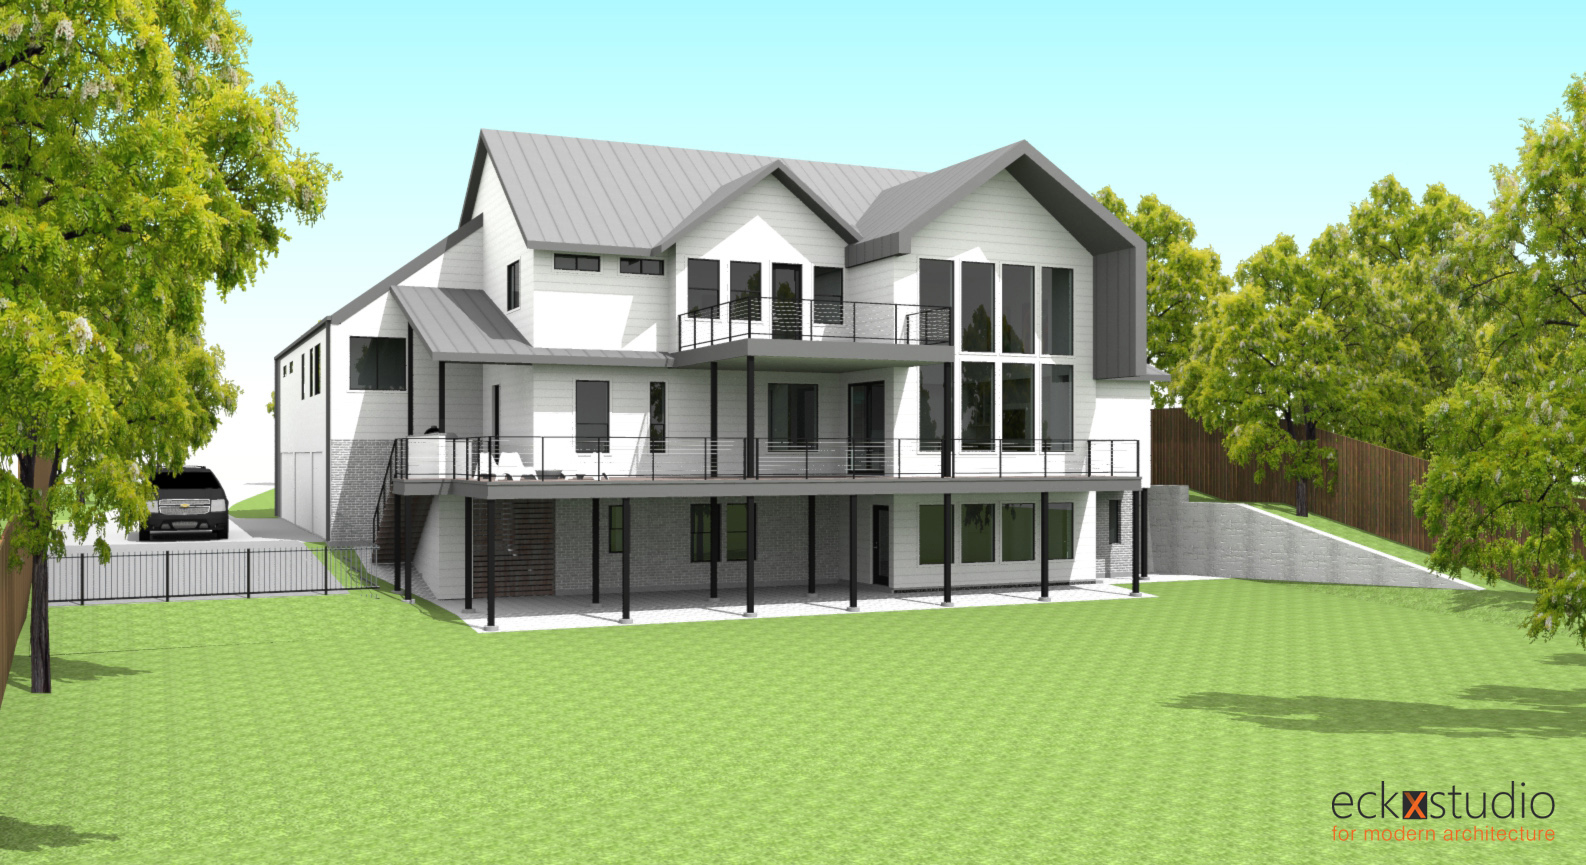 Placid Rear Rendering image